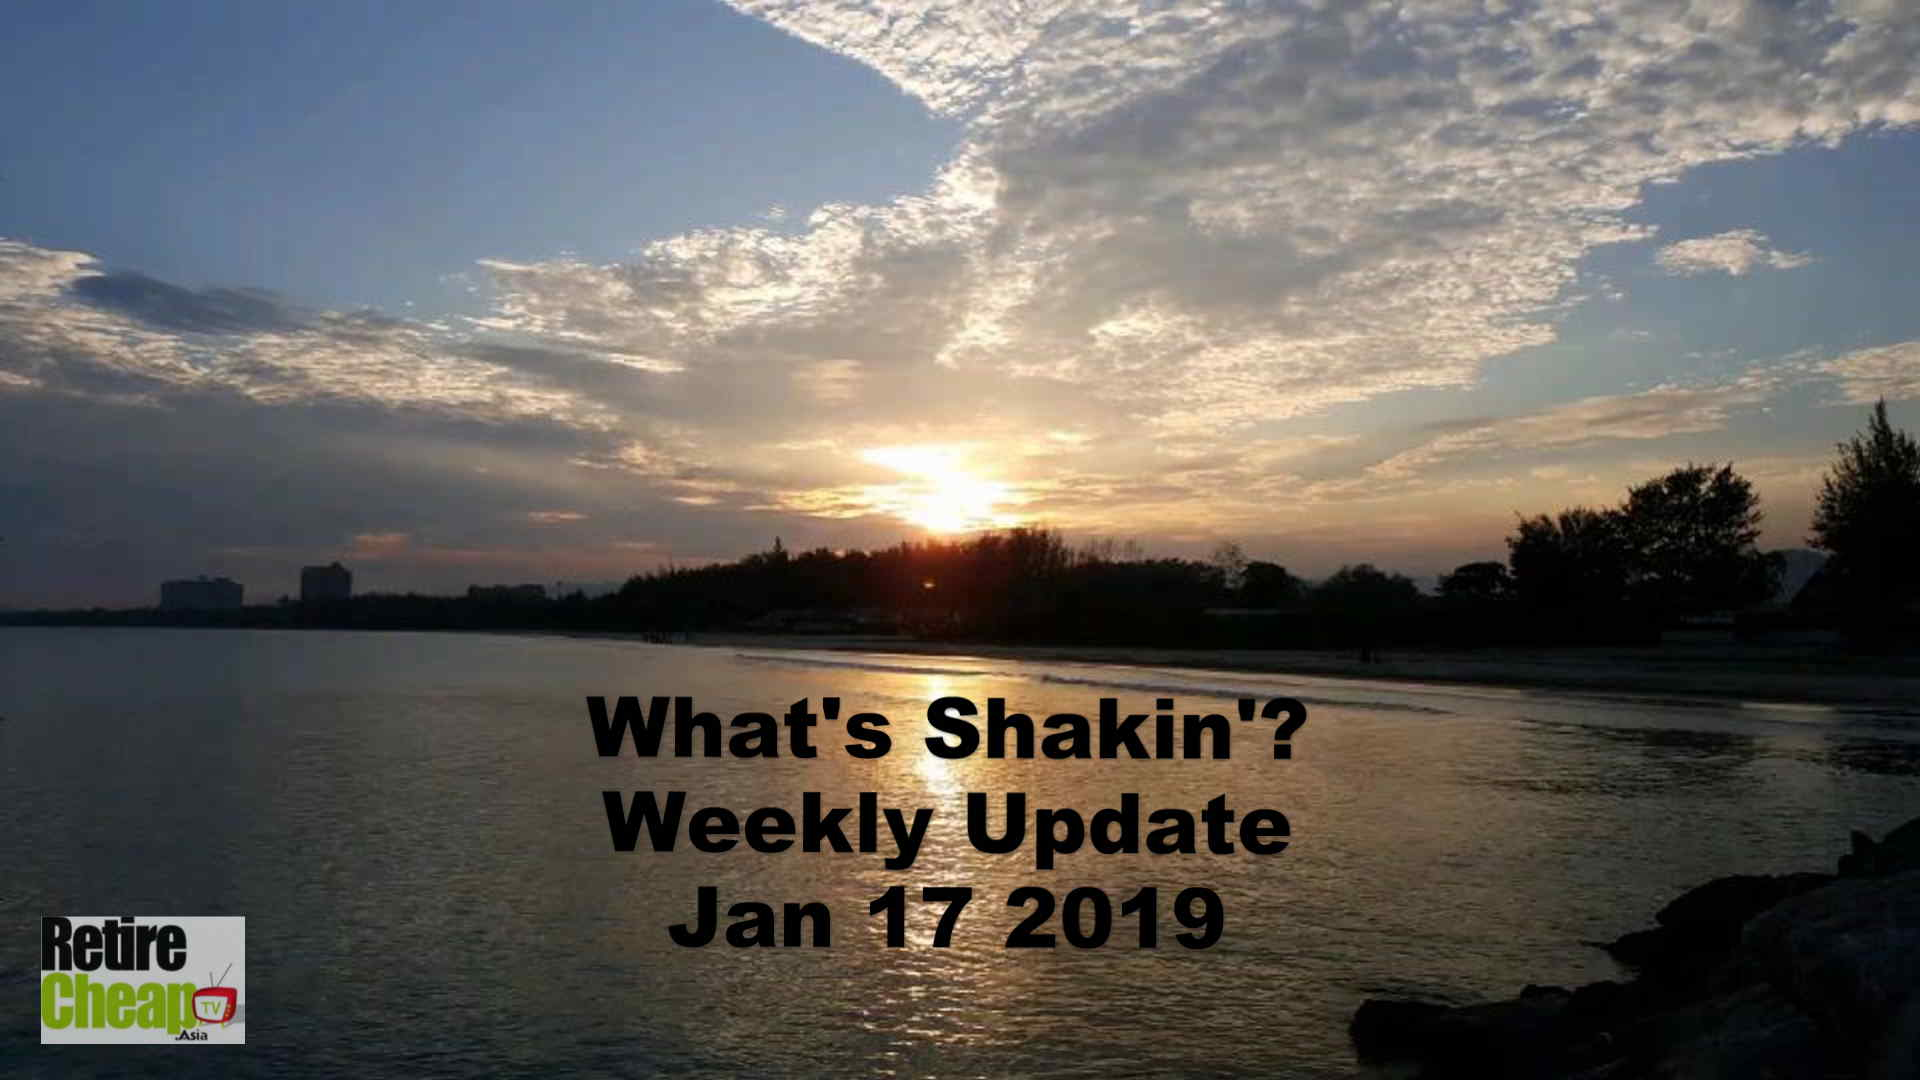 What's Shakn'? Week Jan 17 2019